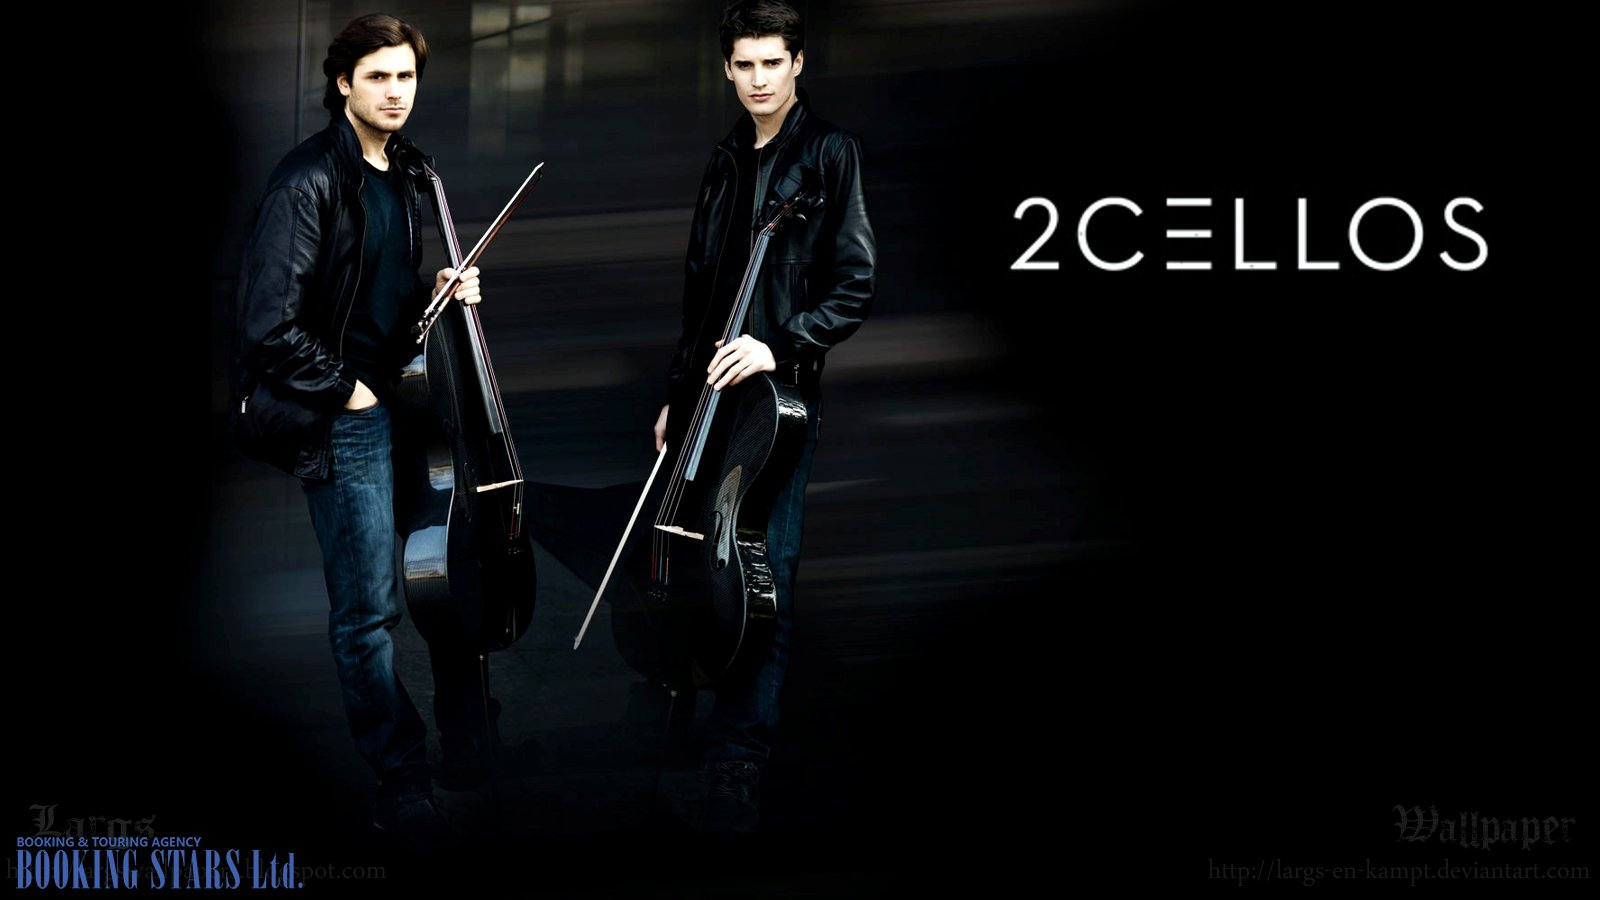 Cello Wallpaper Photo 22287 Hd Pictures: Booking Stars Ltd. Booking & Touring Agency.